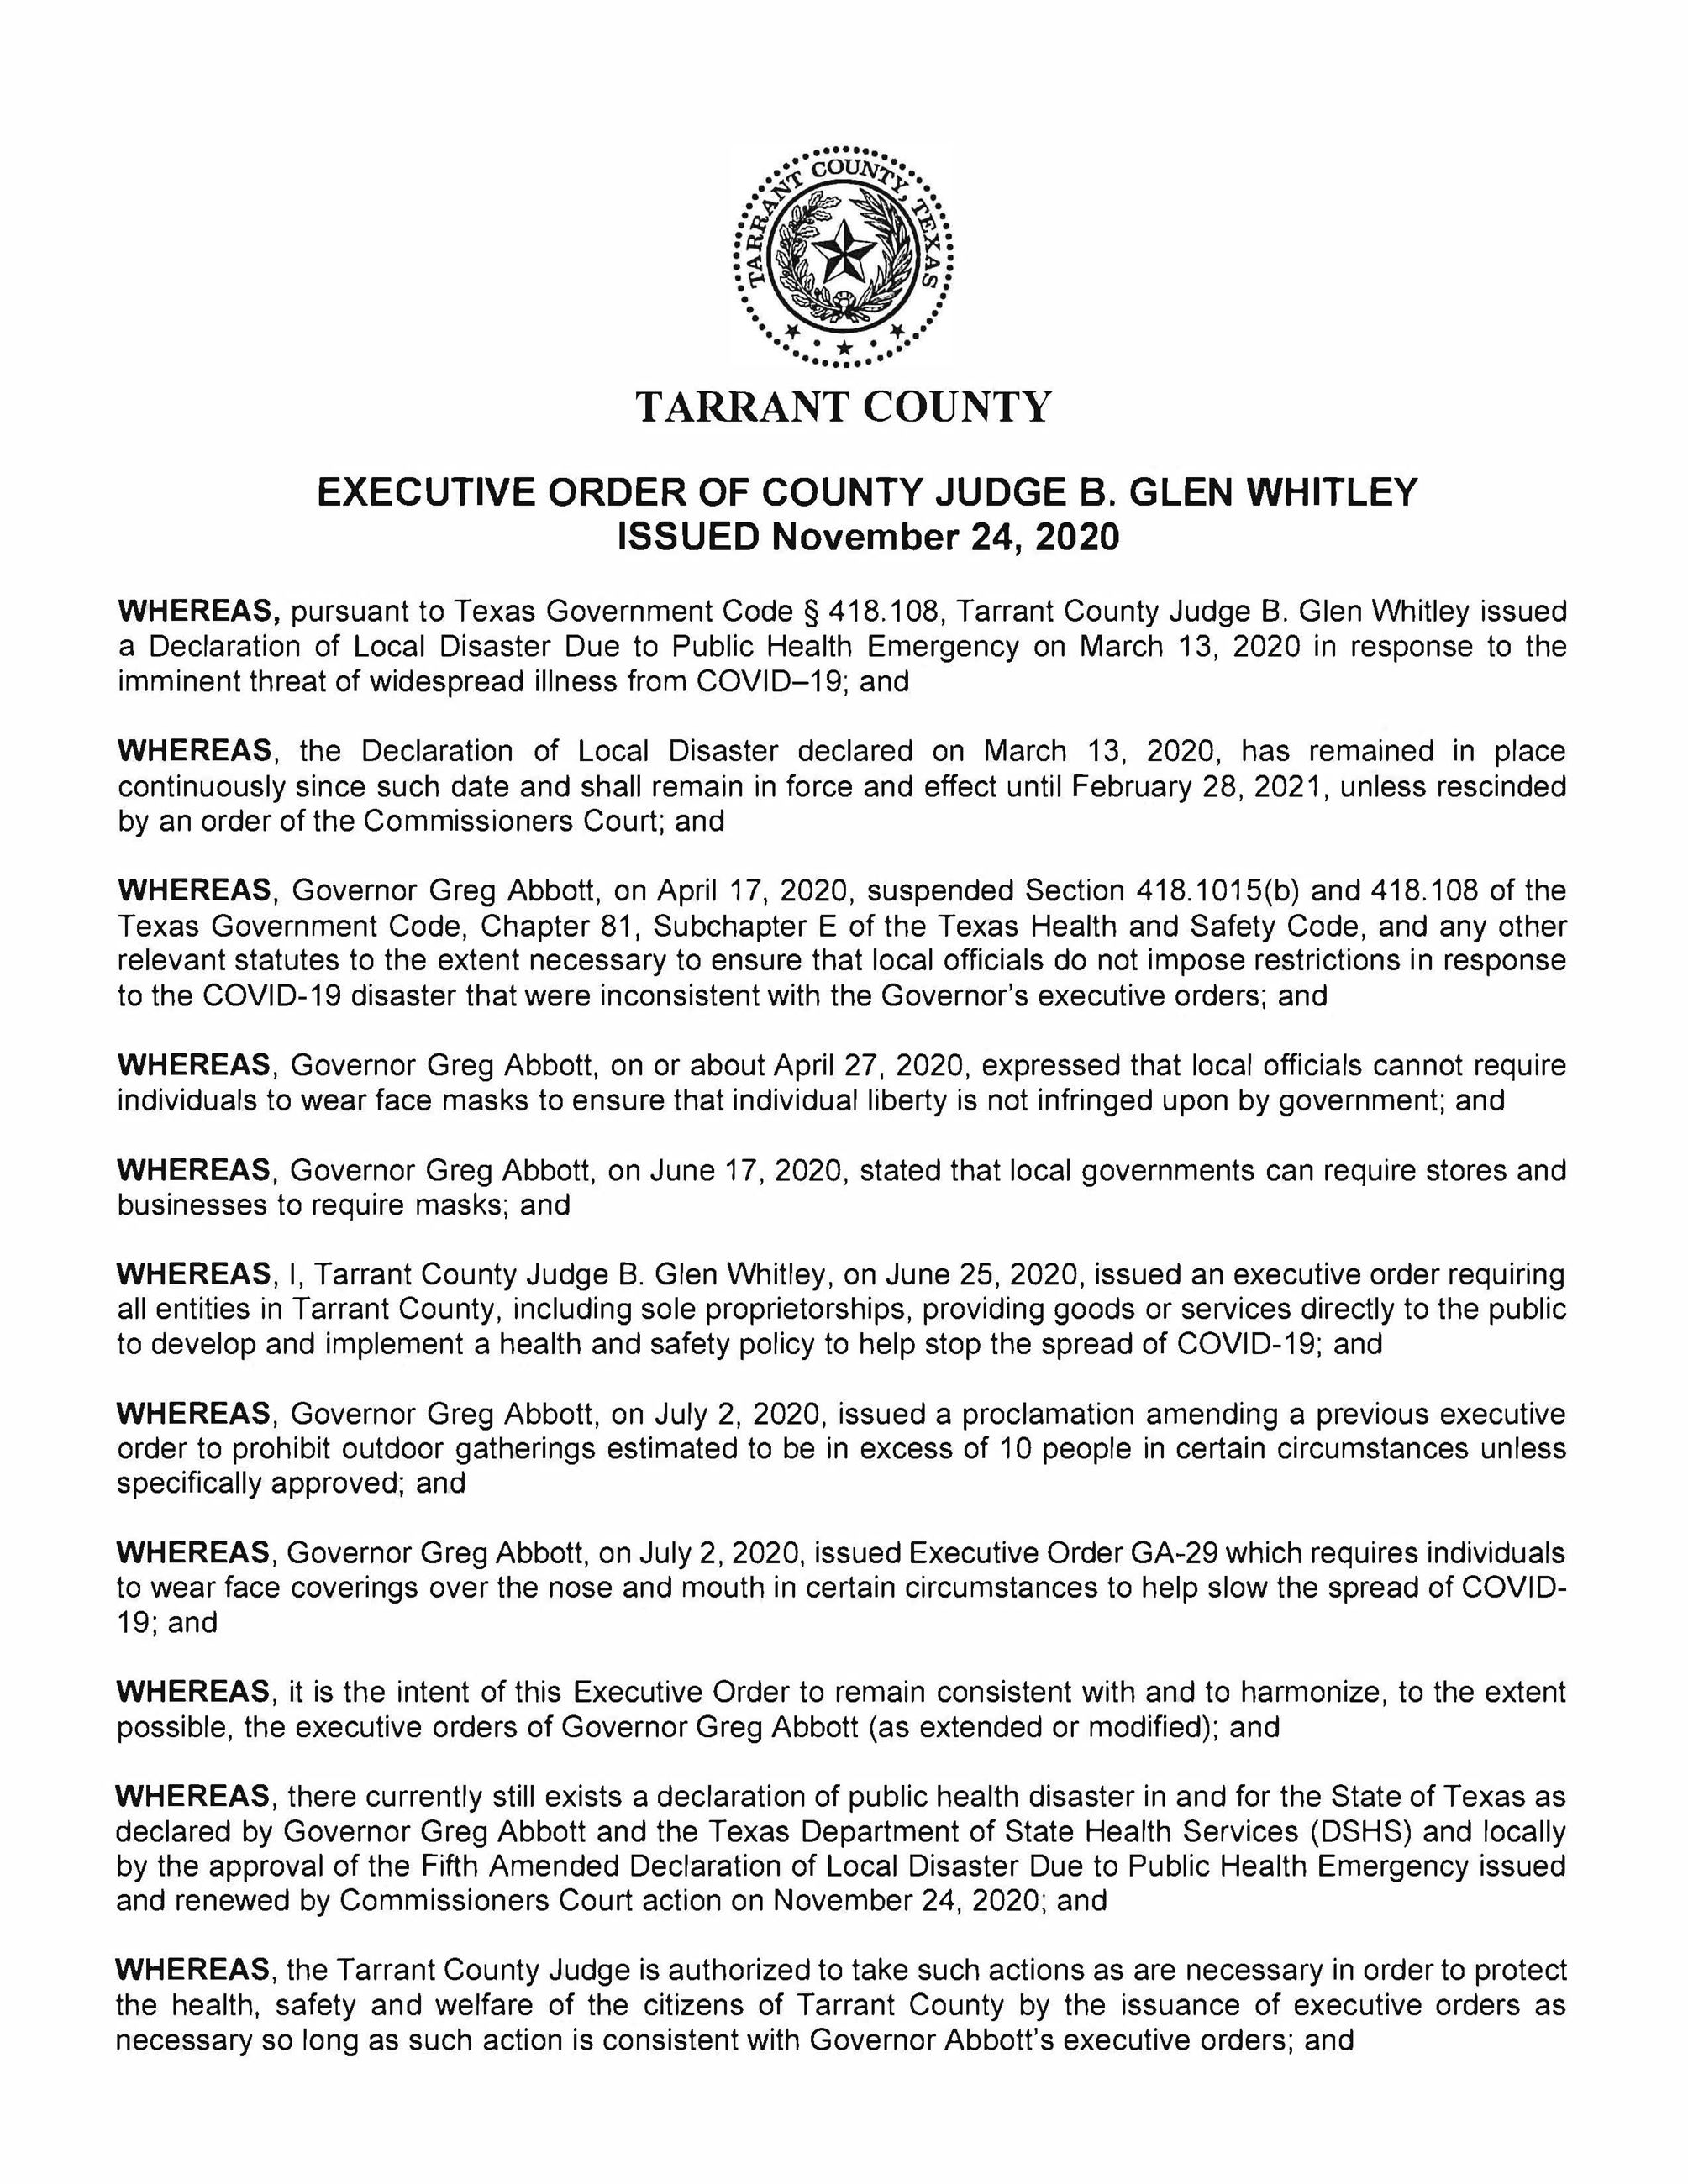 11_24_2020 Tarrant County Executive Order_Page_1